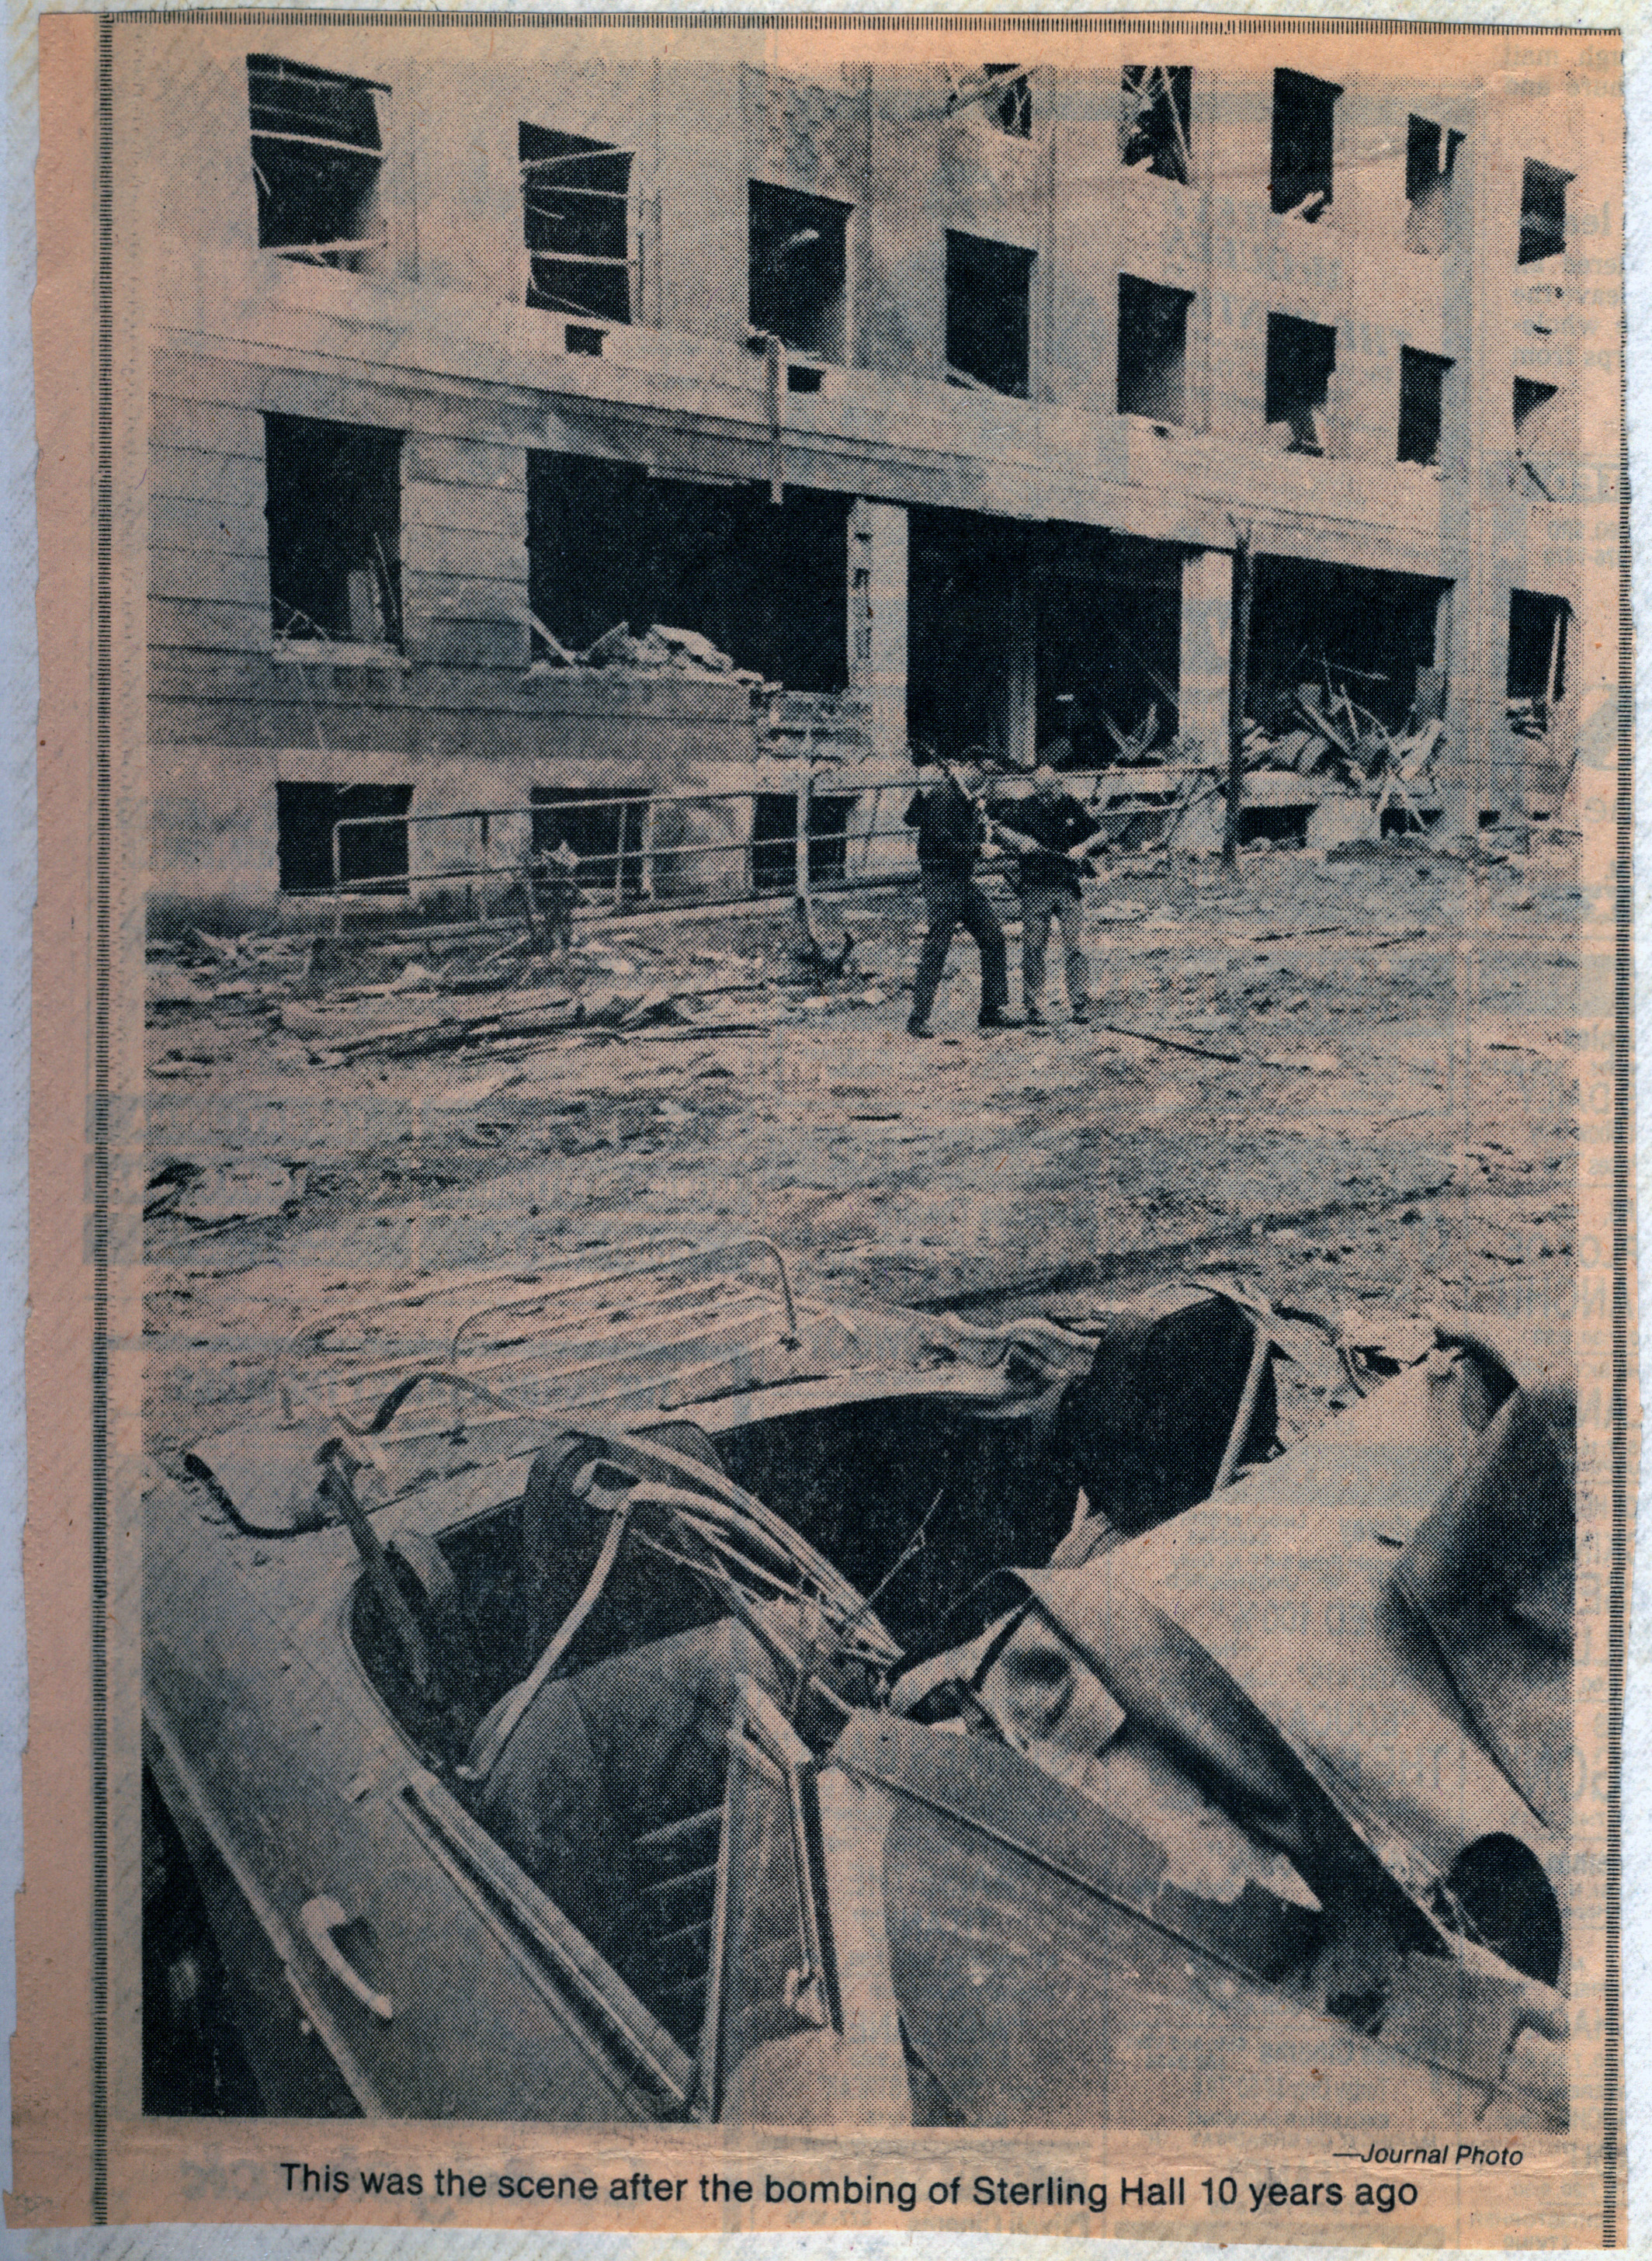 Newspaper clipping printed 10 years after the bombing at Sterling Hall. The image features the wreckage at Sterling Hall, showing two men standing amongst debris, and a car in the front of the image, also filled with debris.